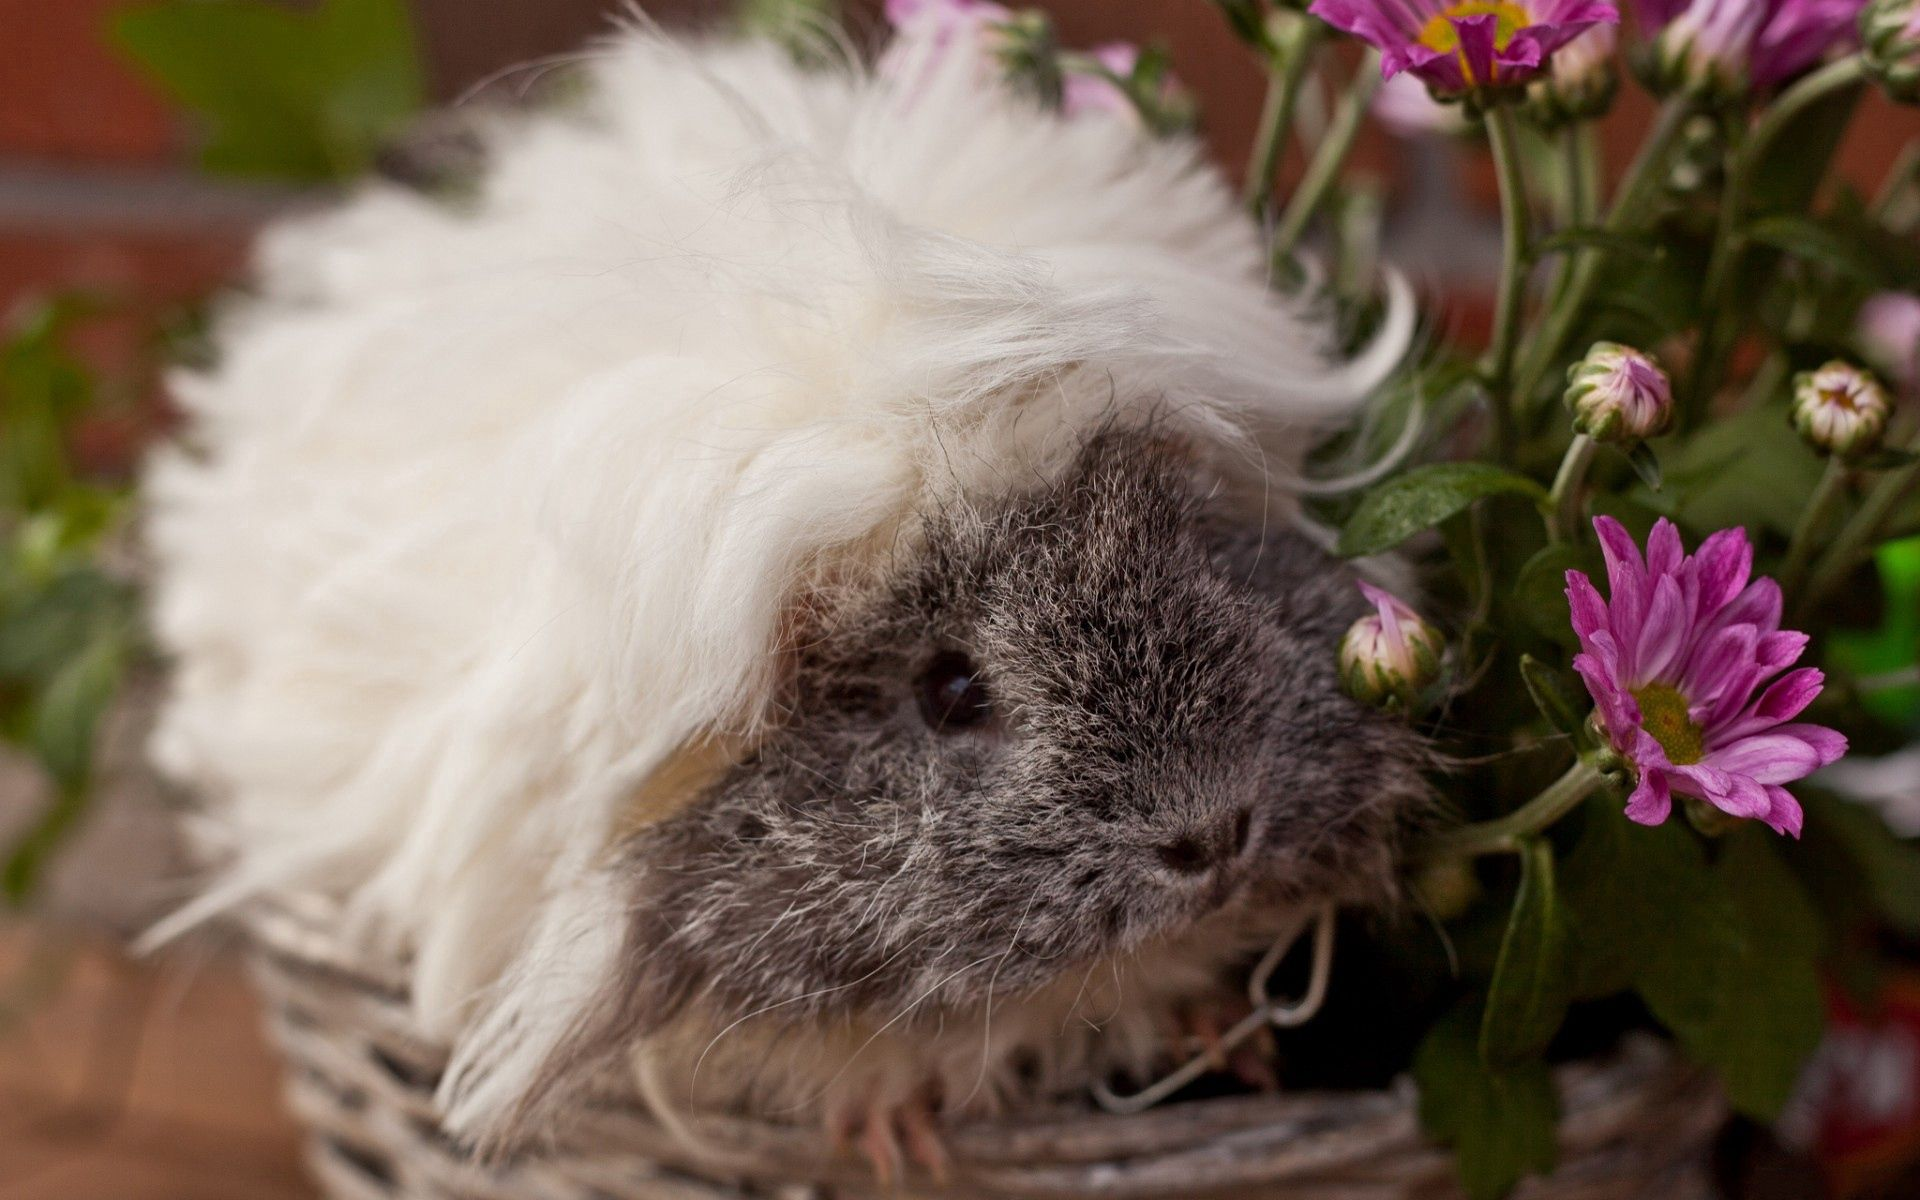 147071 download wallpaper Animals, Guinea Pig, Fluffy, Sight, Opinion, Beautiful, Rodent screensavers and pictures for free